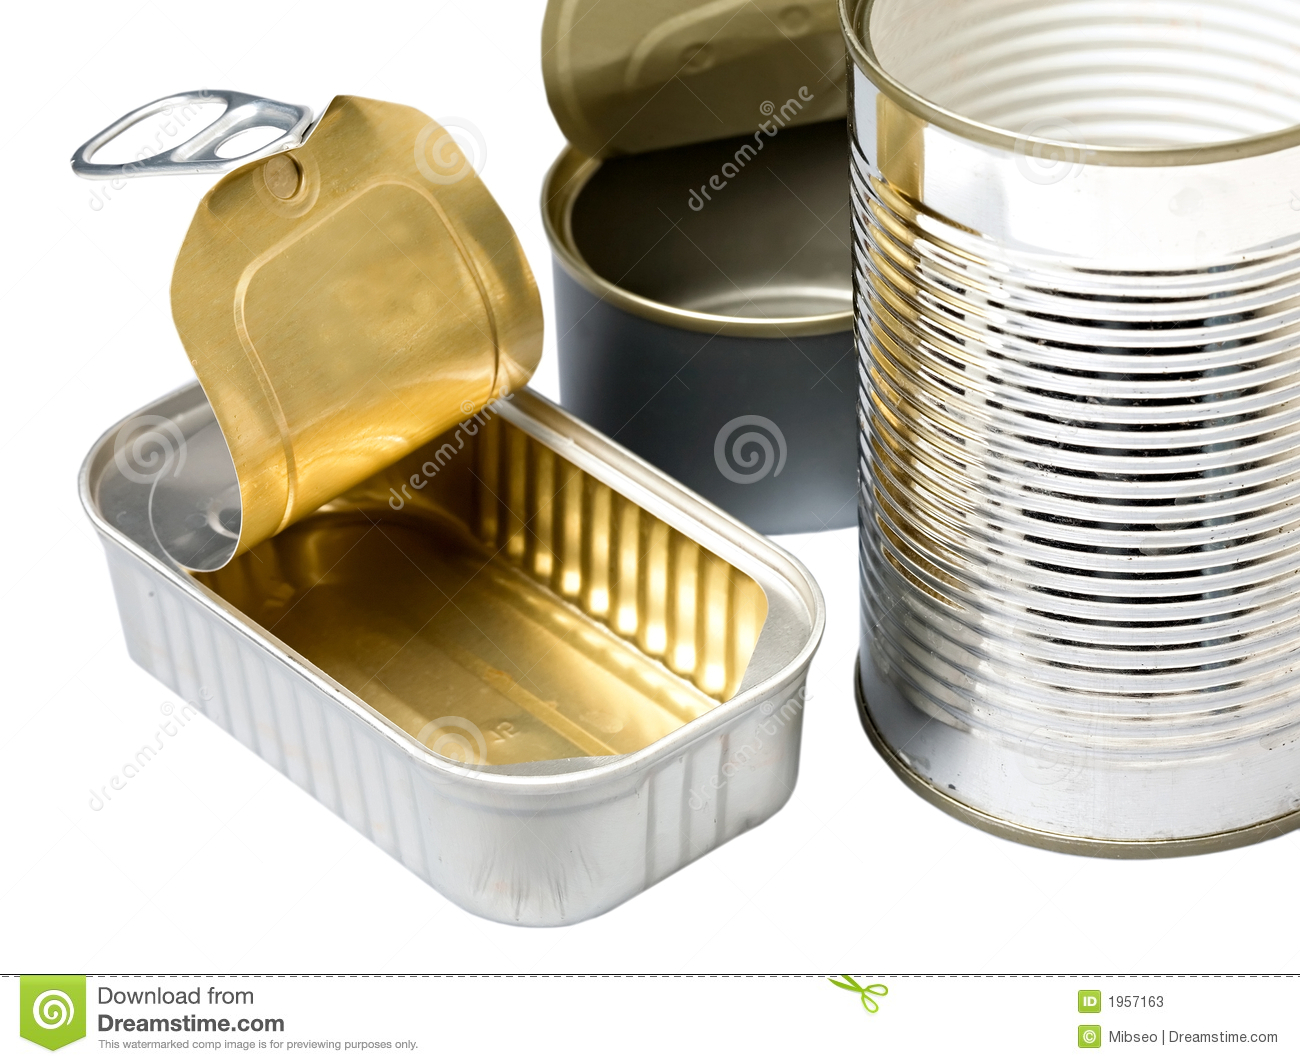 How Can Food Cans Be Recycled